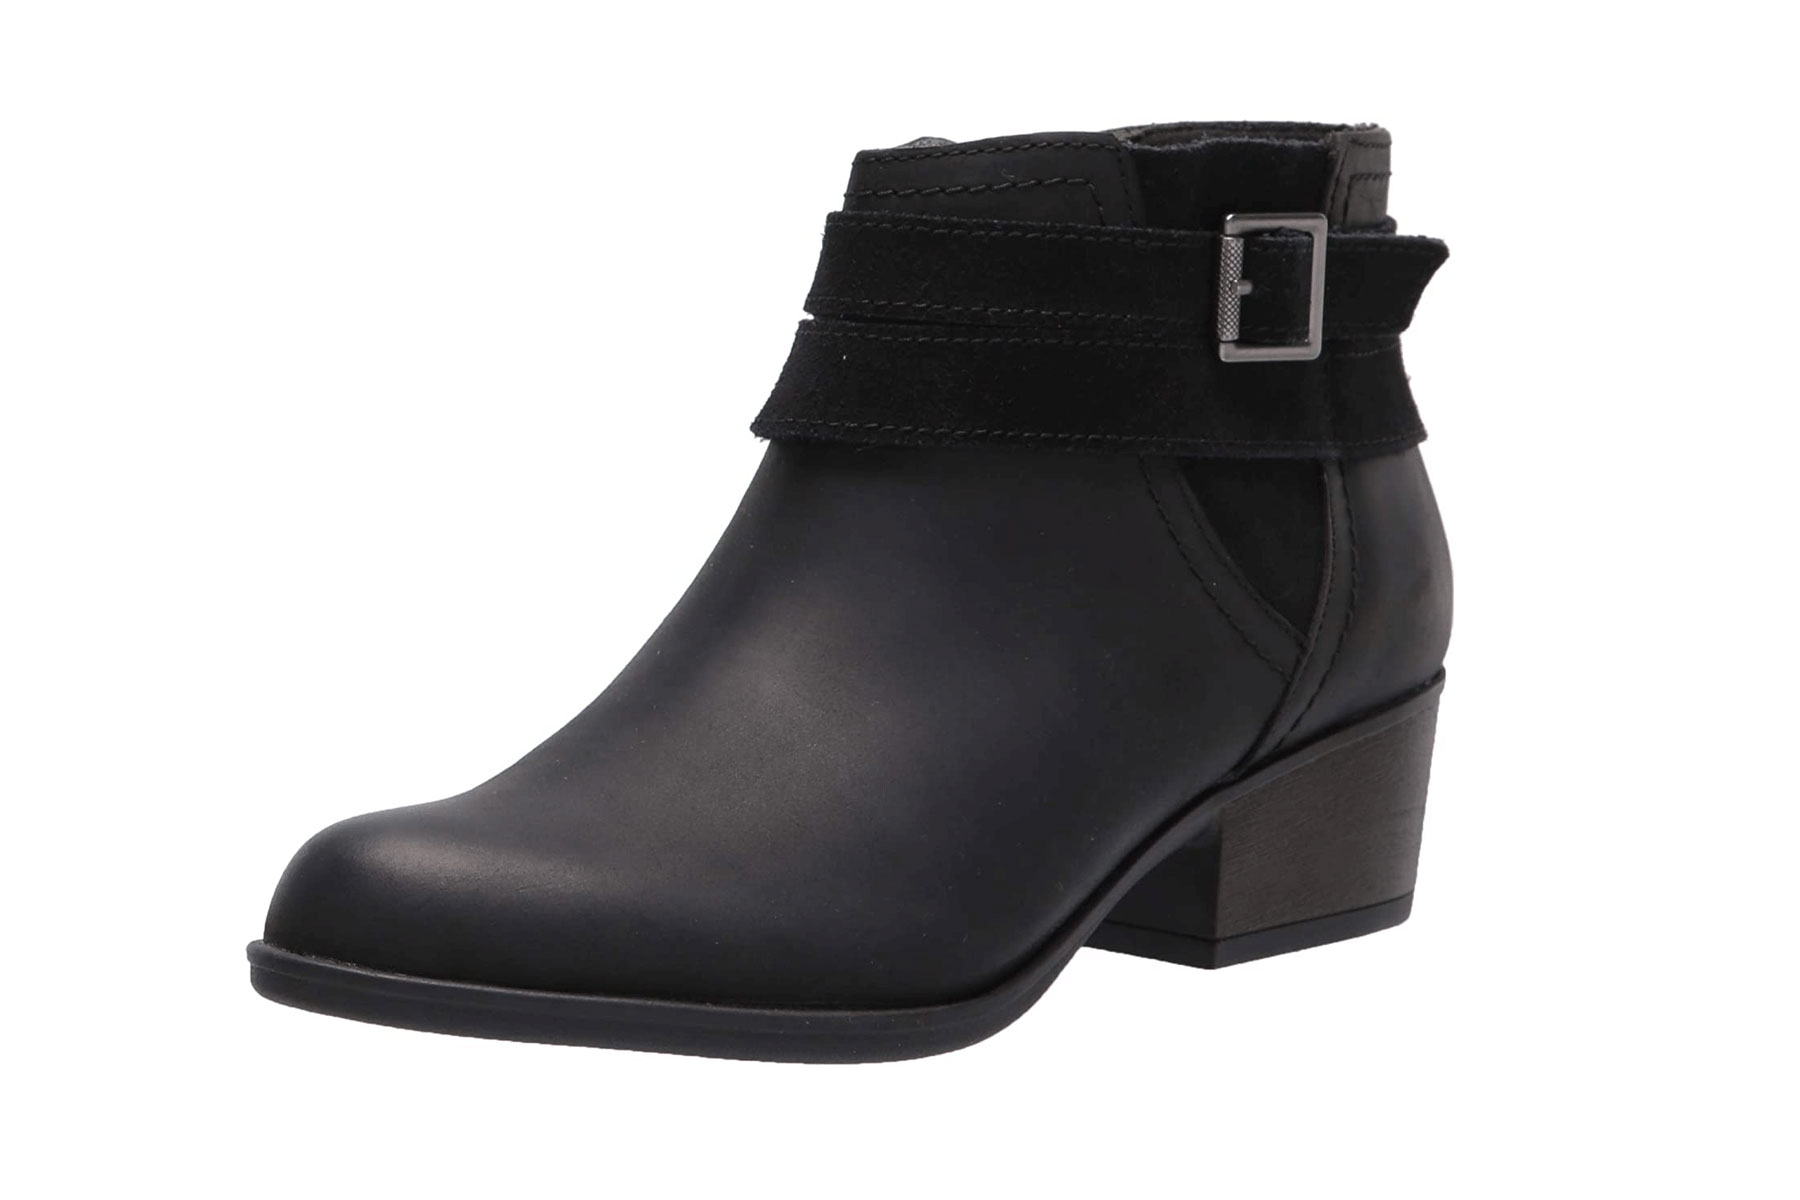 Clarks Women's Adreena Show Ankle Boot